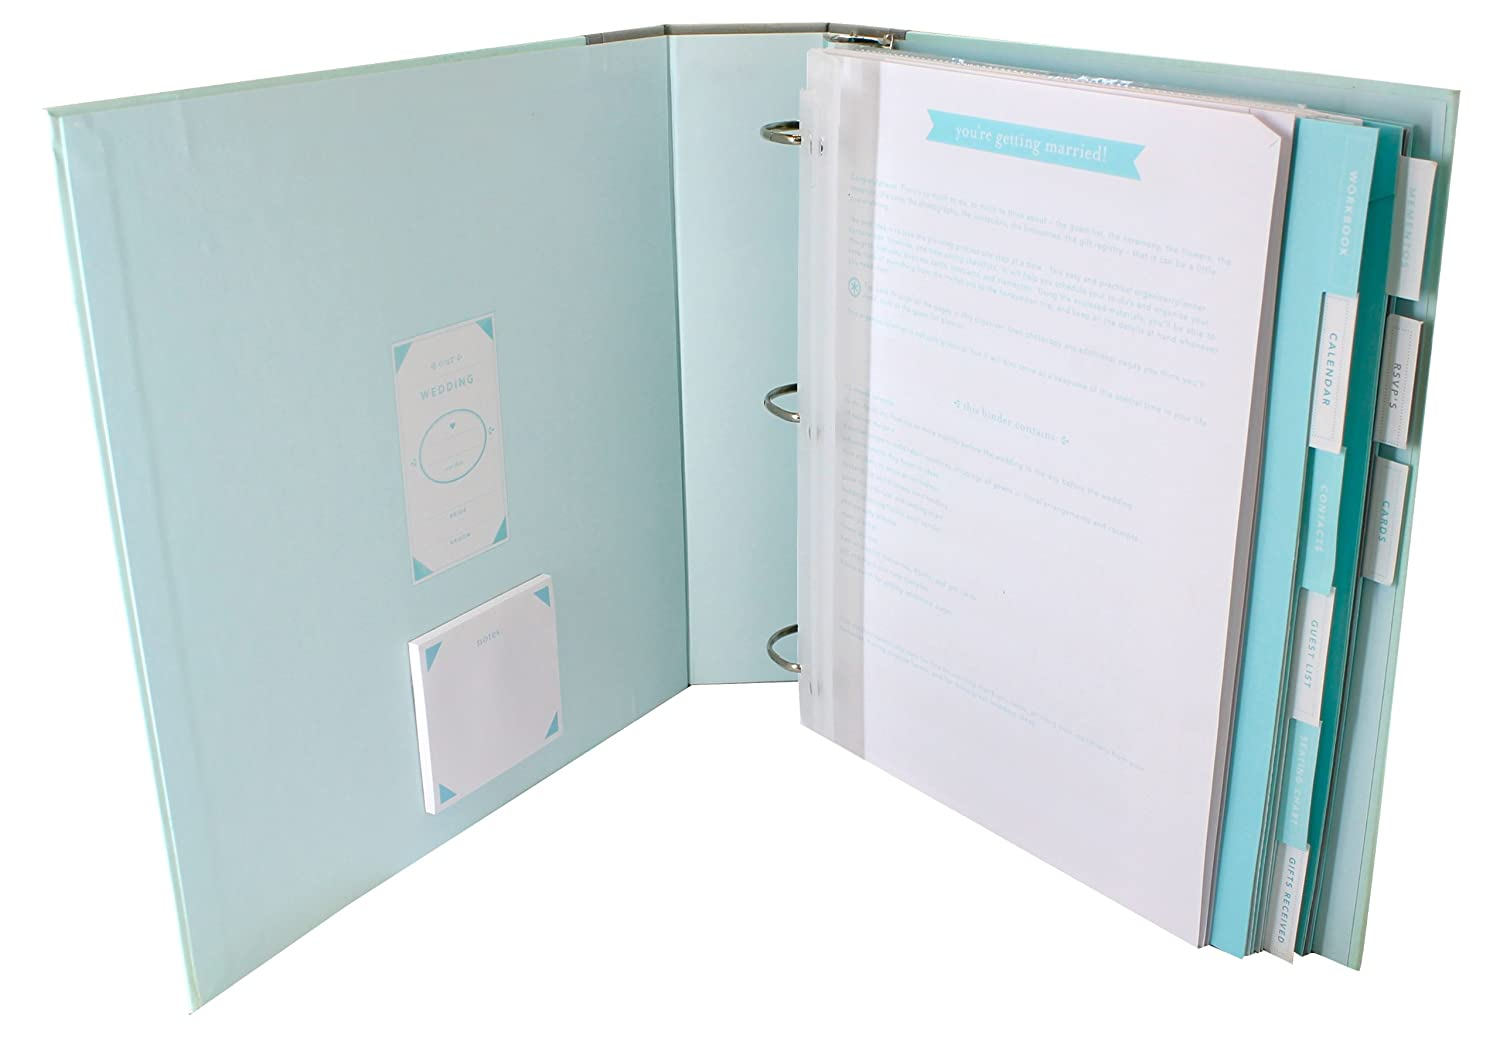 Amazon.com : MARTHA STEWART Wedding Planner & Organizer Binder ...